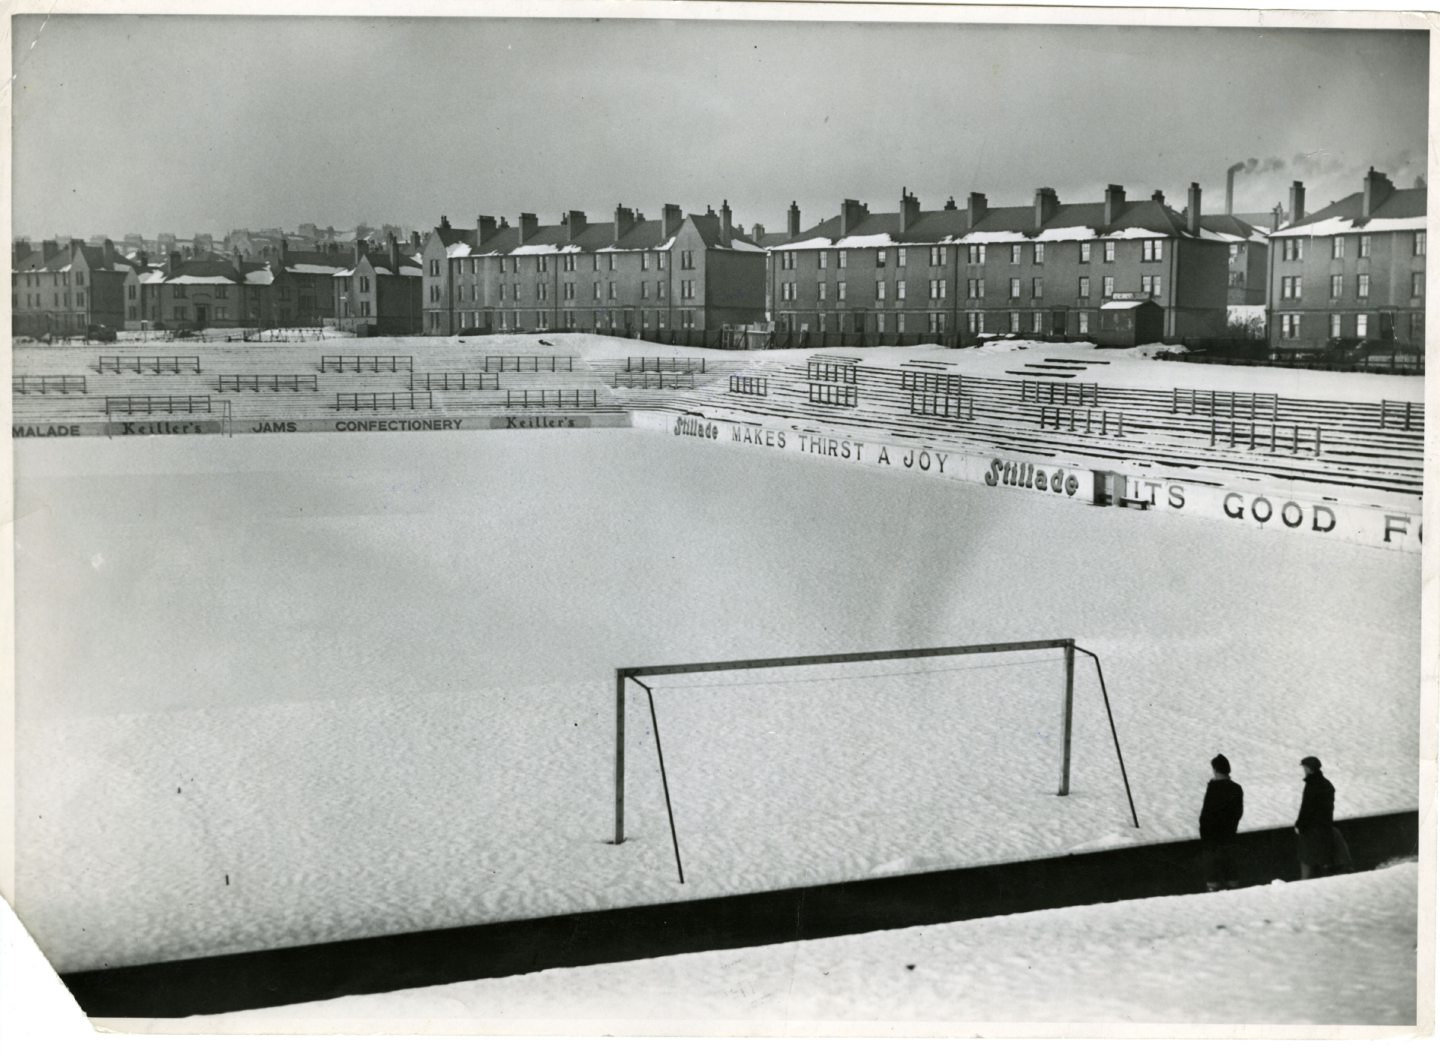 Tannadice Park covered in snow in January 1951.